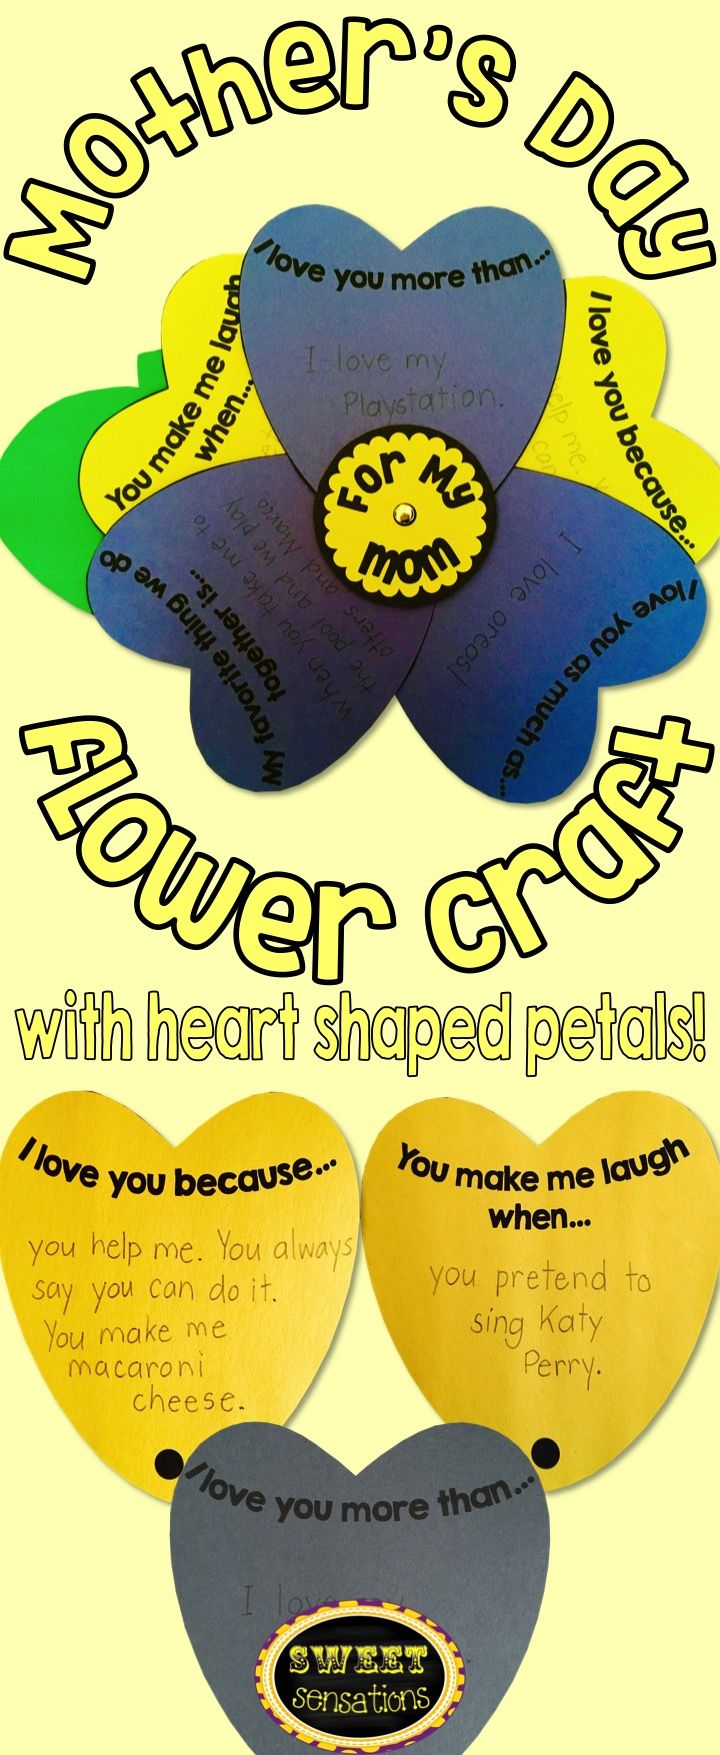 This Mother's Day Flower craft for school and home is sure to delight mom and make her feel appreciated on her special day!  Makes a beautiful garden bulletin board display and students can take it home for a special keepsake that mom will want to keep!